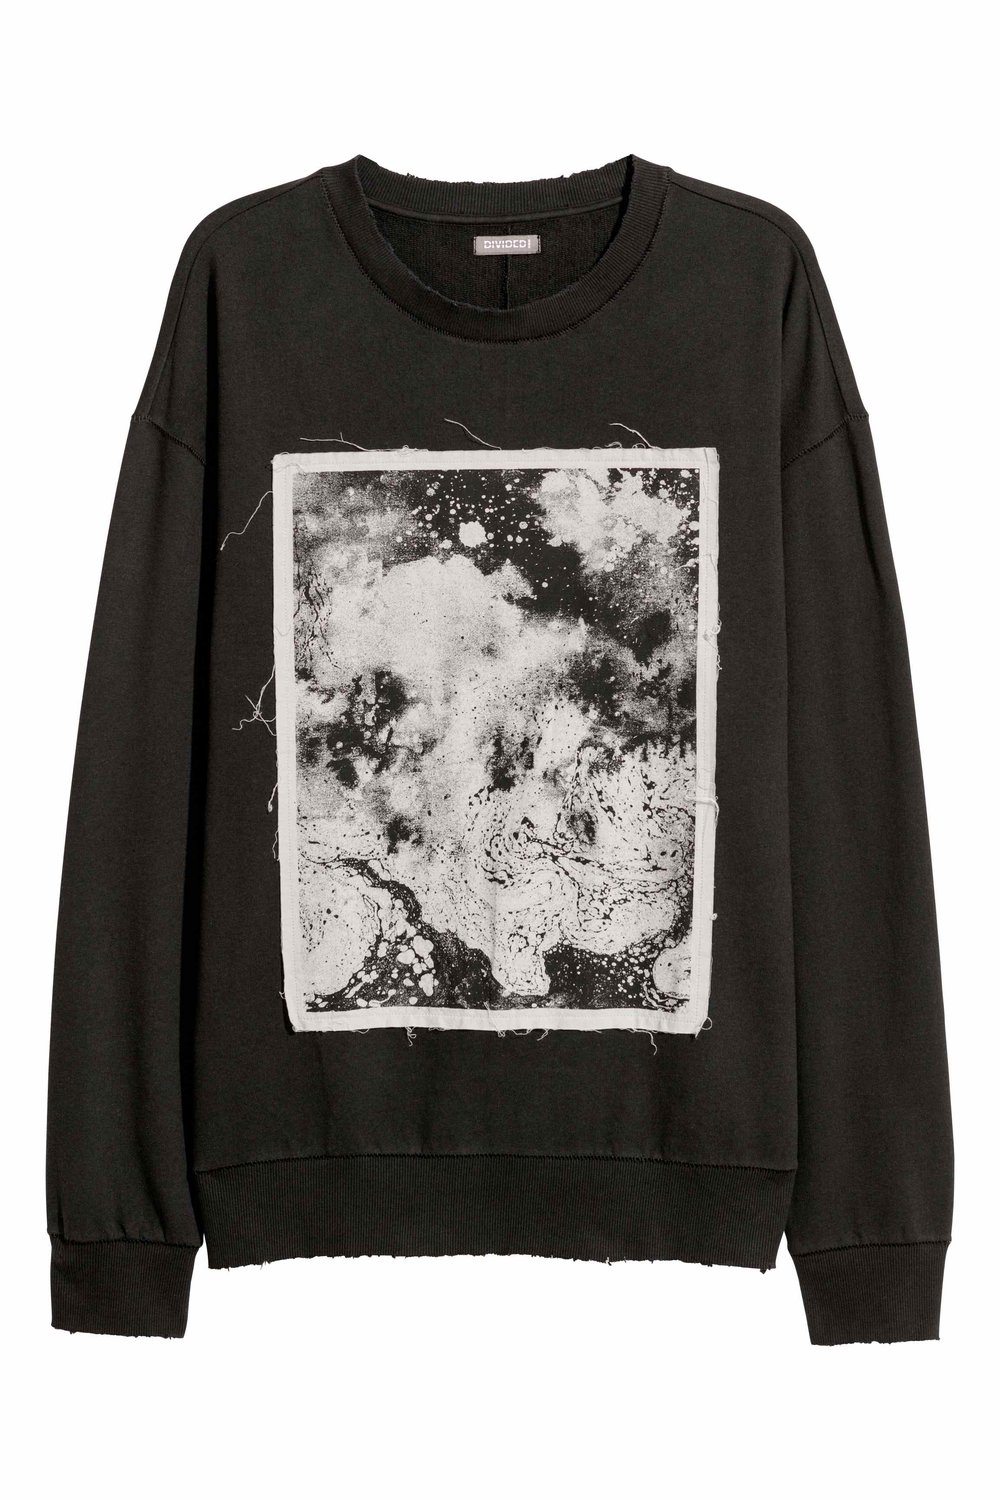 Sweatshirt with a motif, £24.99 ( H&M )